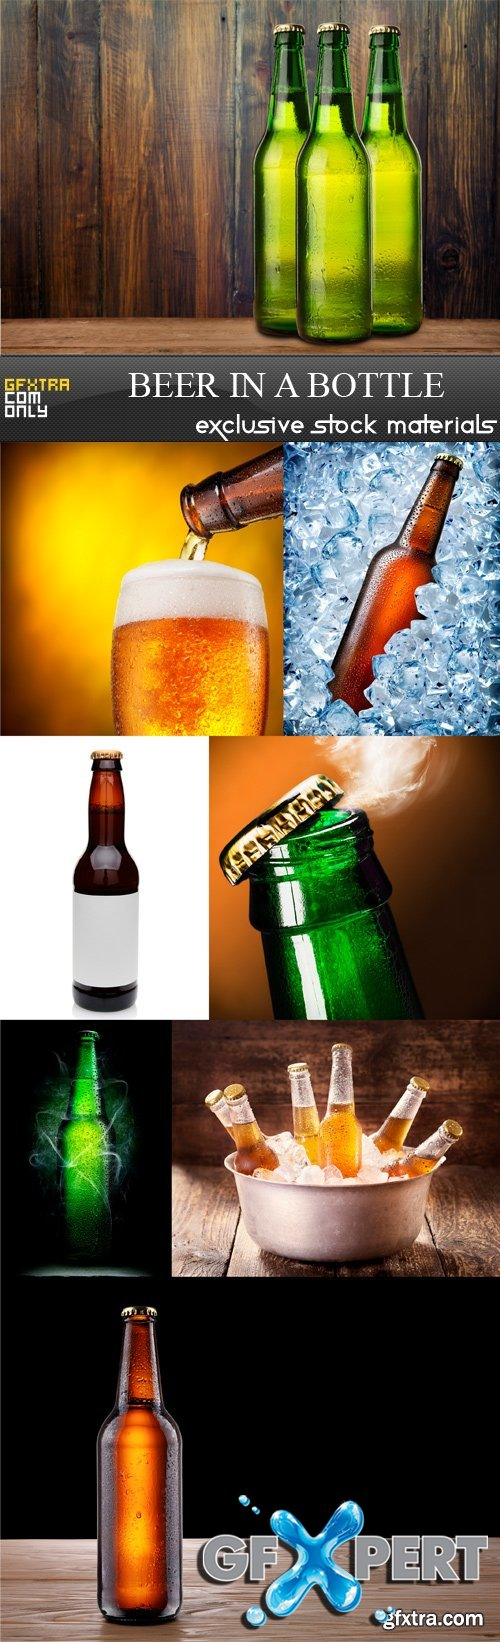 Beer in a bottle - 8 UHQ JPEG